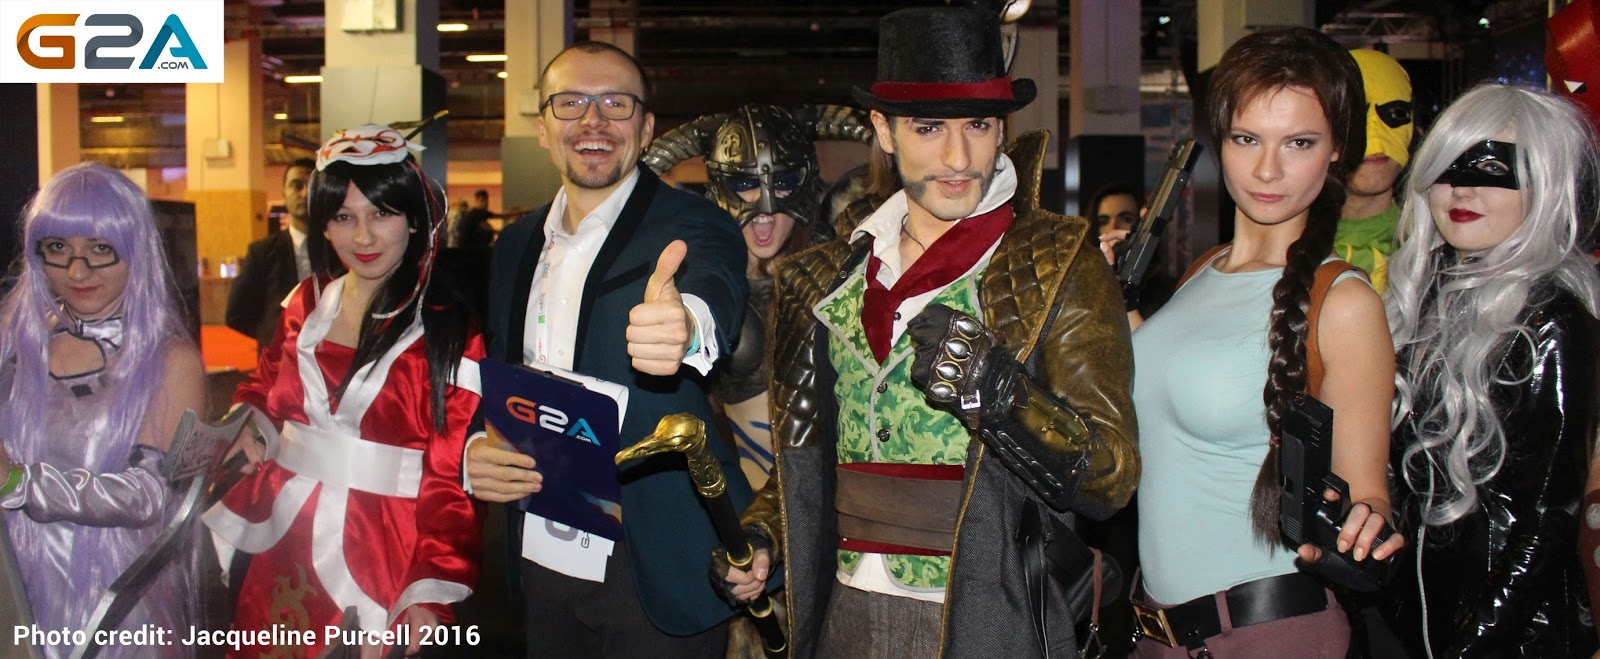 G2A COM Entertains Gamers at GIST, Gaming Istanbul 2016